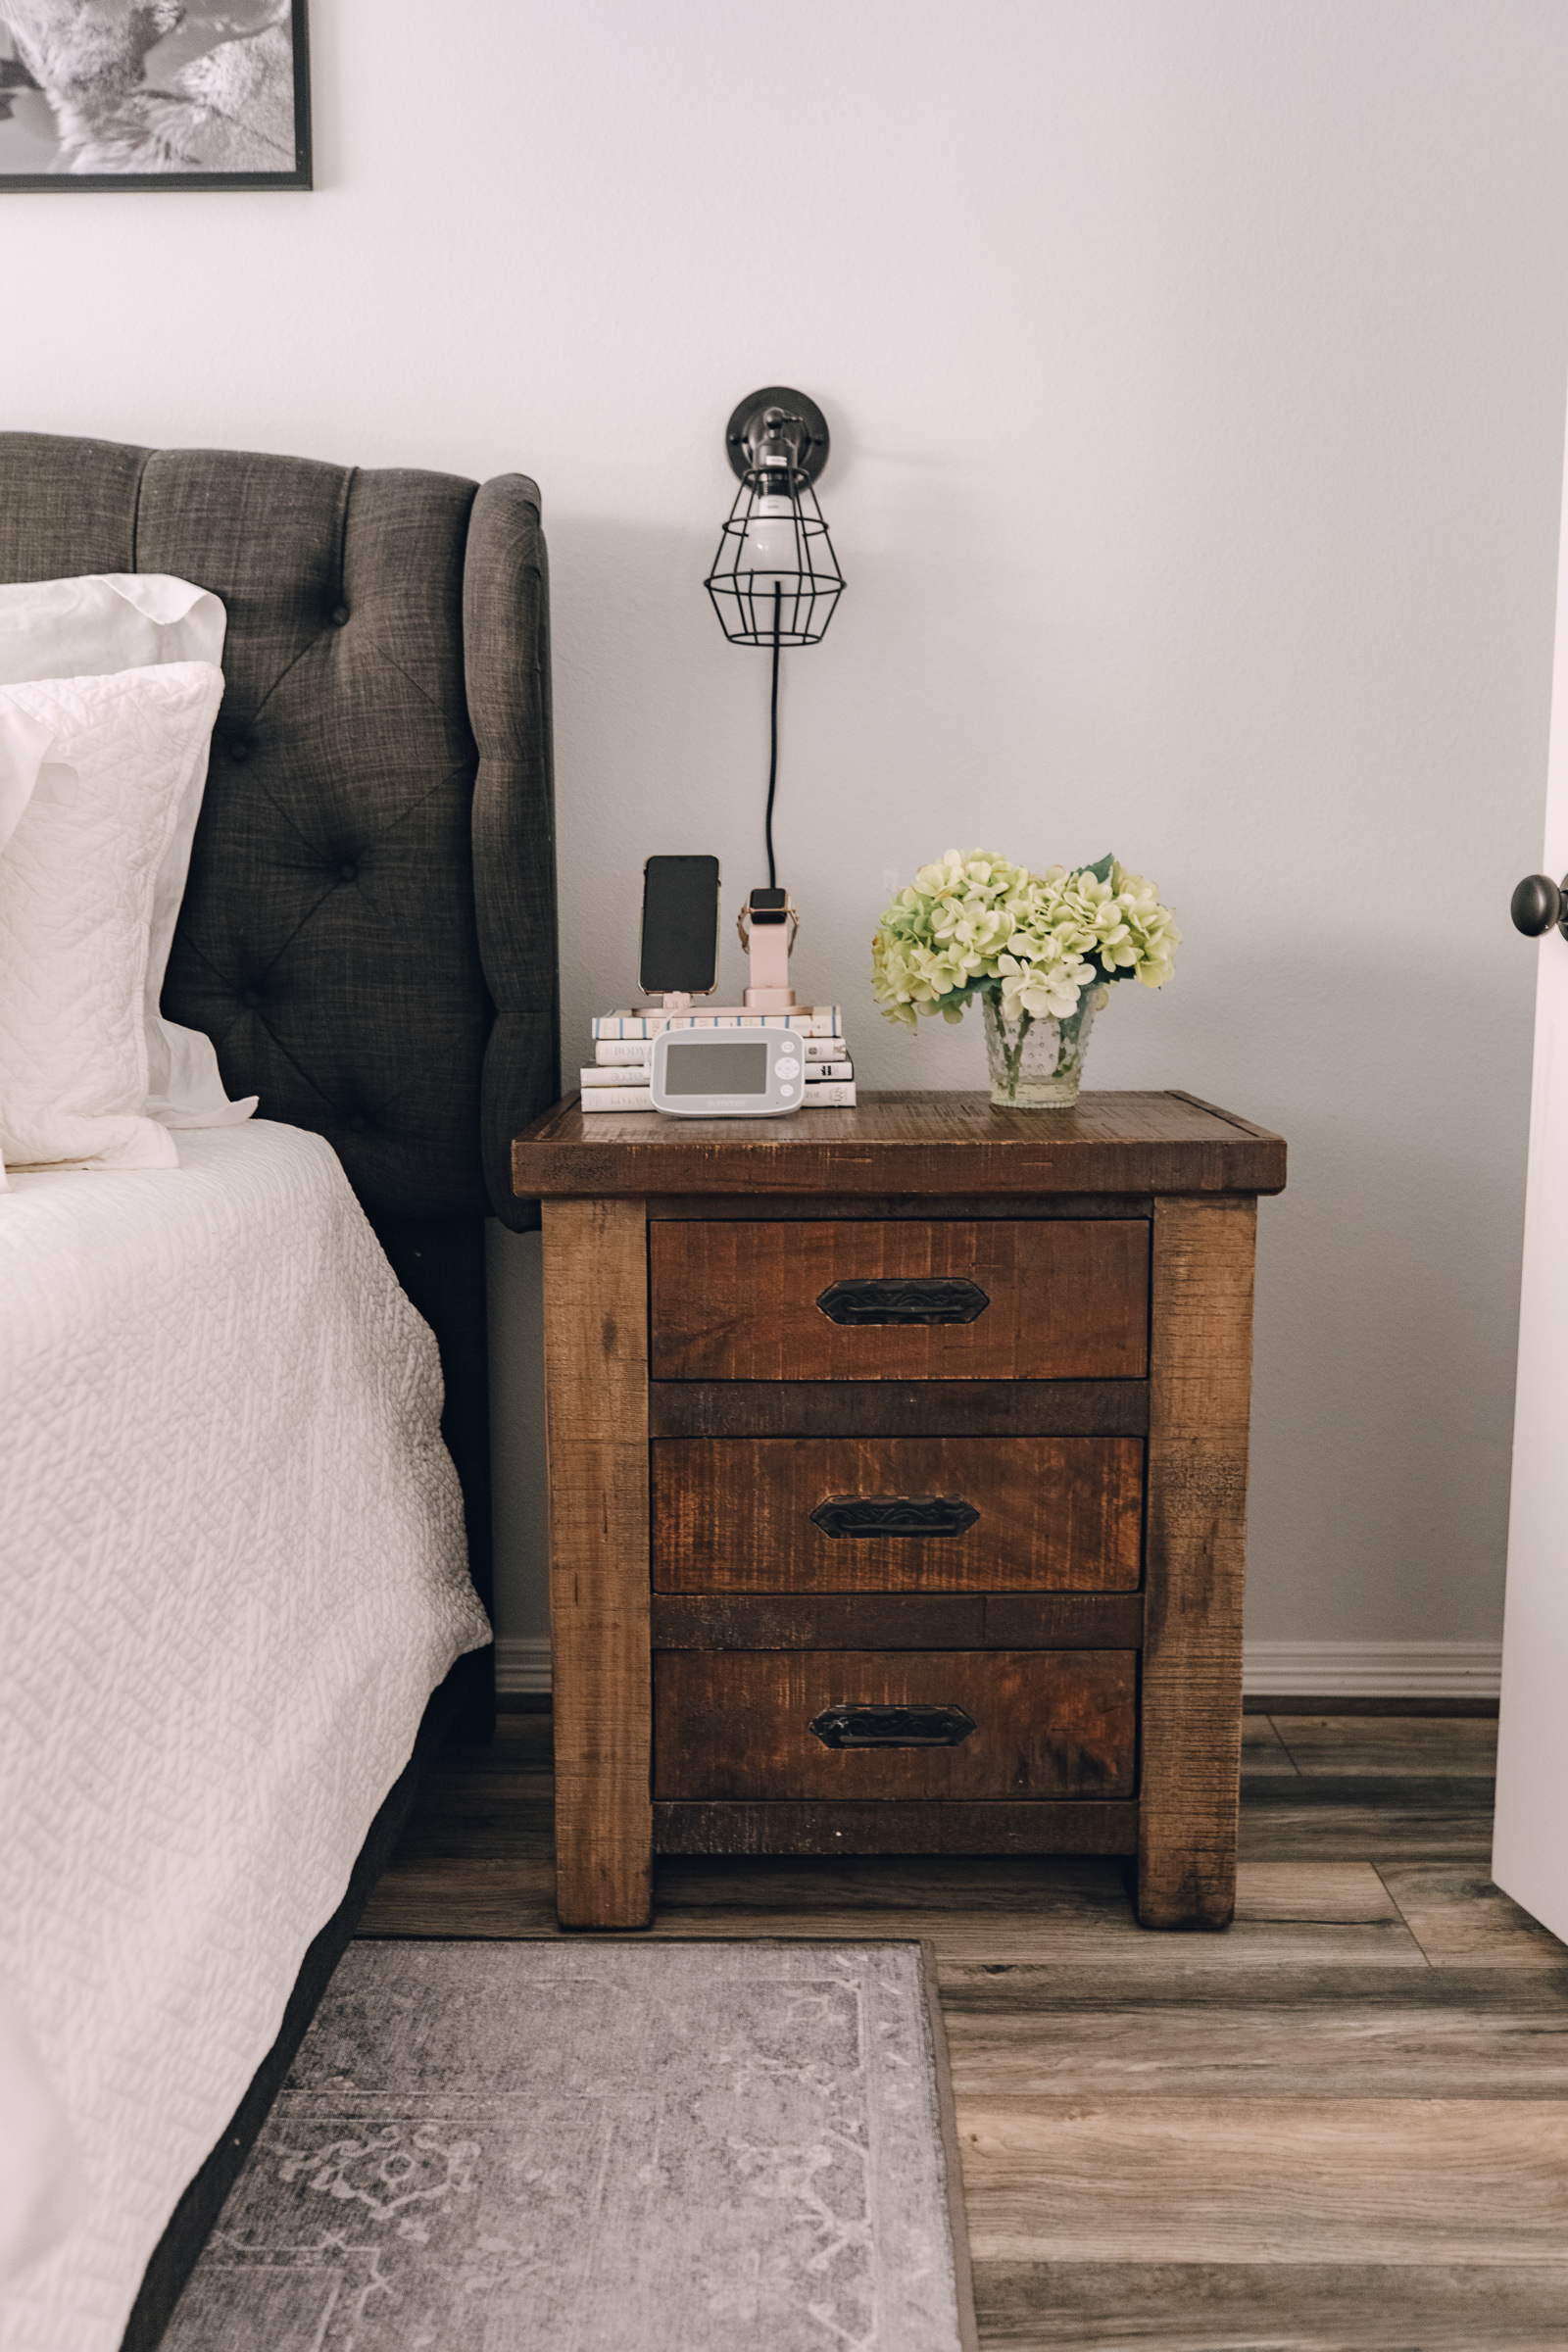 lifestyle blogger Elly Brown shares her minimalist nightstand decor in her master bedroom